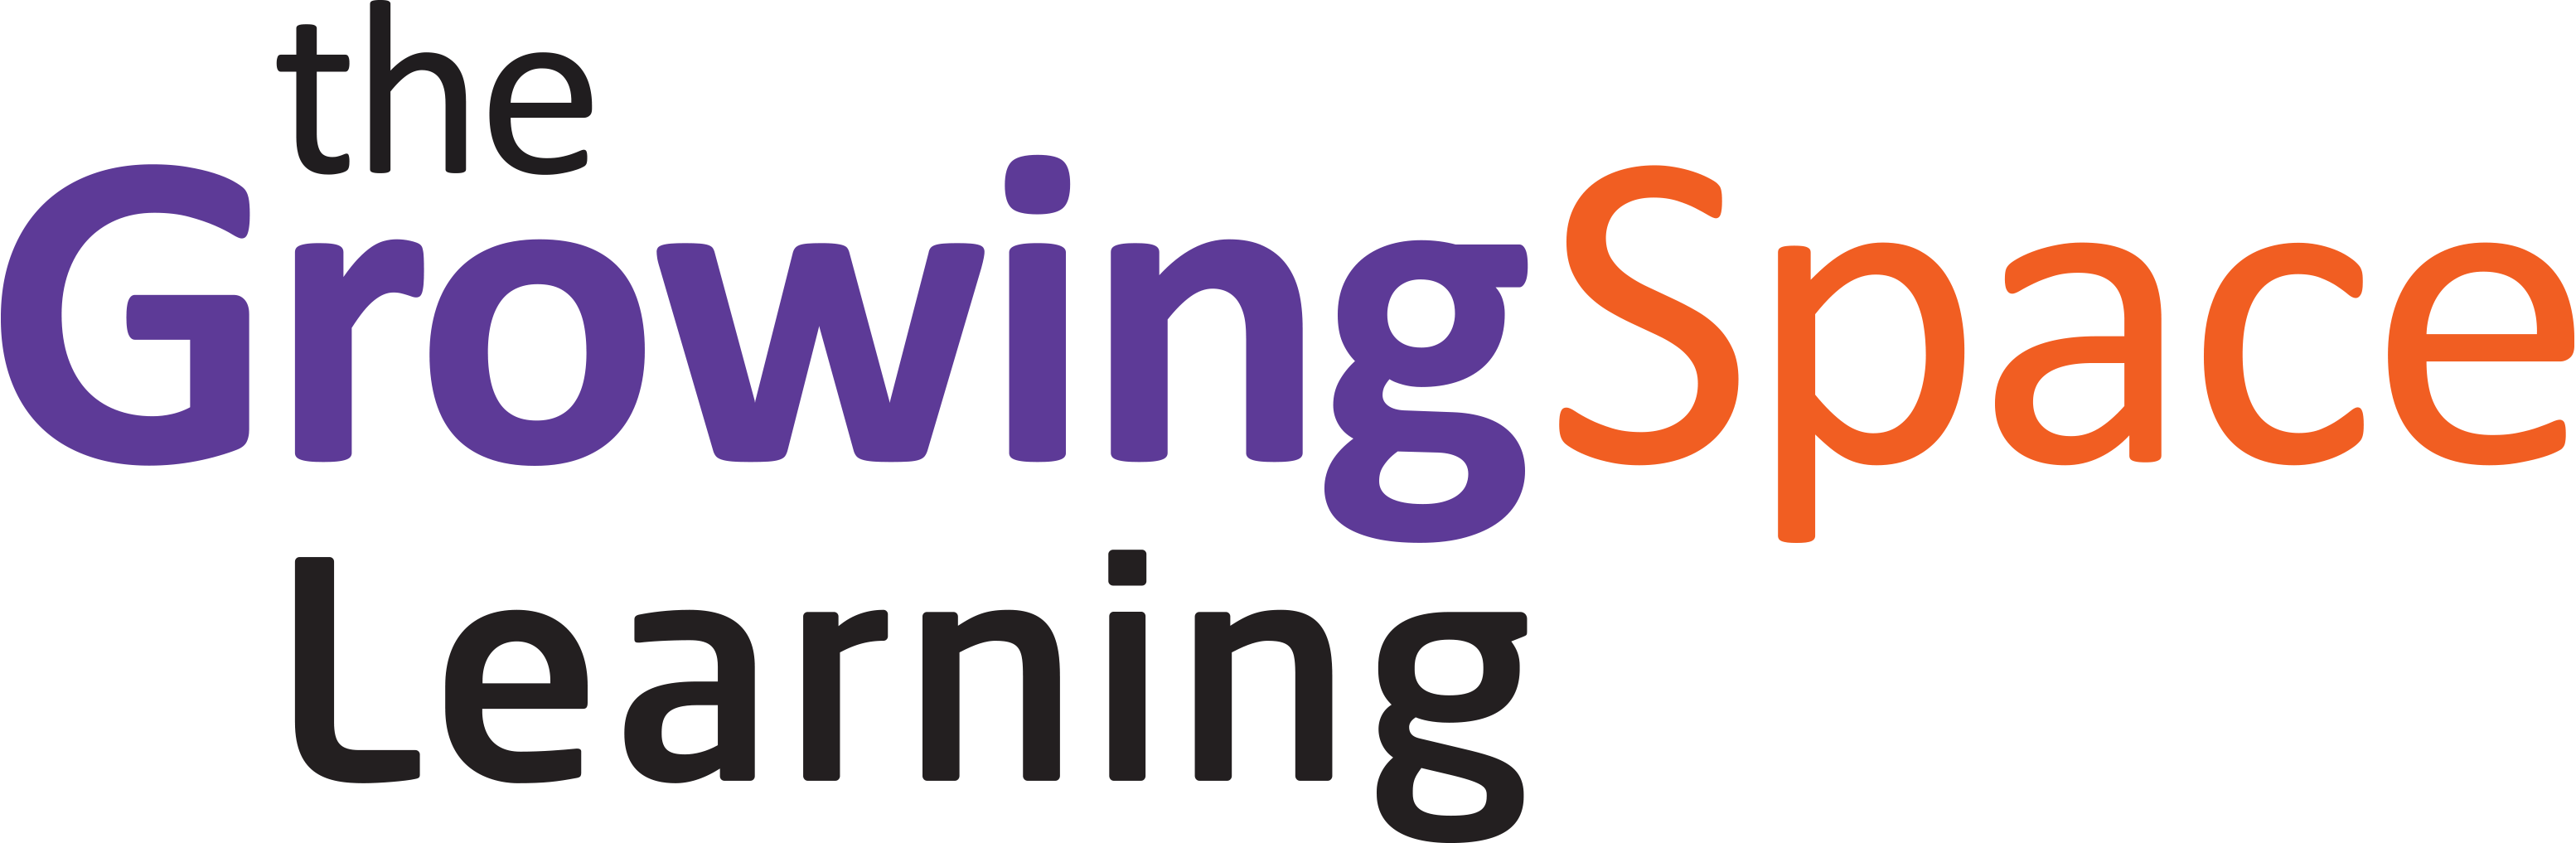 "Image of Growing Space Learning logo. It contains 4 images that form a square in purple and orange. They are an image of two people shaking hands, a figure in a wheelchair, a figure of a person's head with an outline of the brain and an image of a light bulb. Next to the images is the words ""The Growing Space Learning."